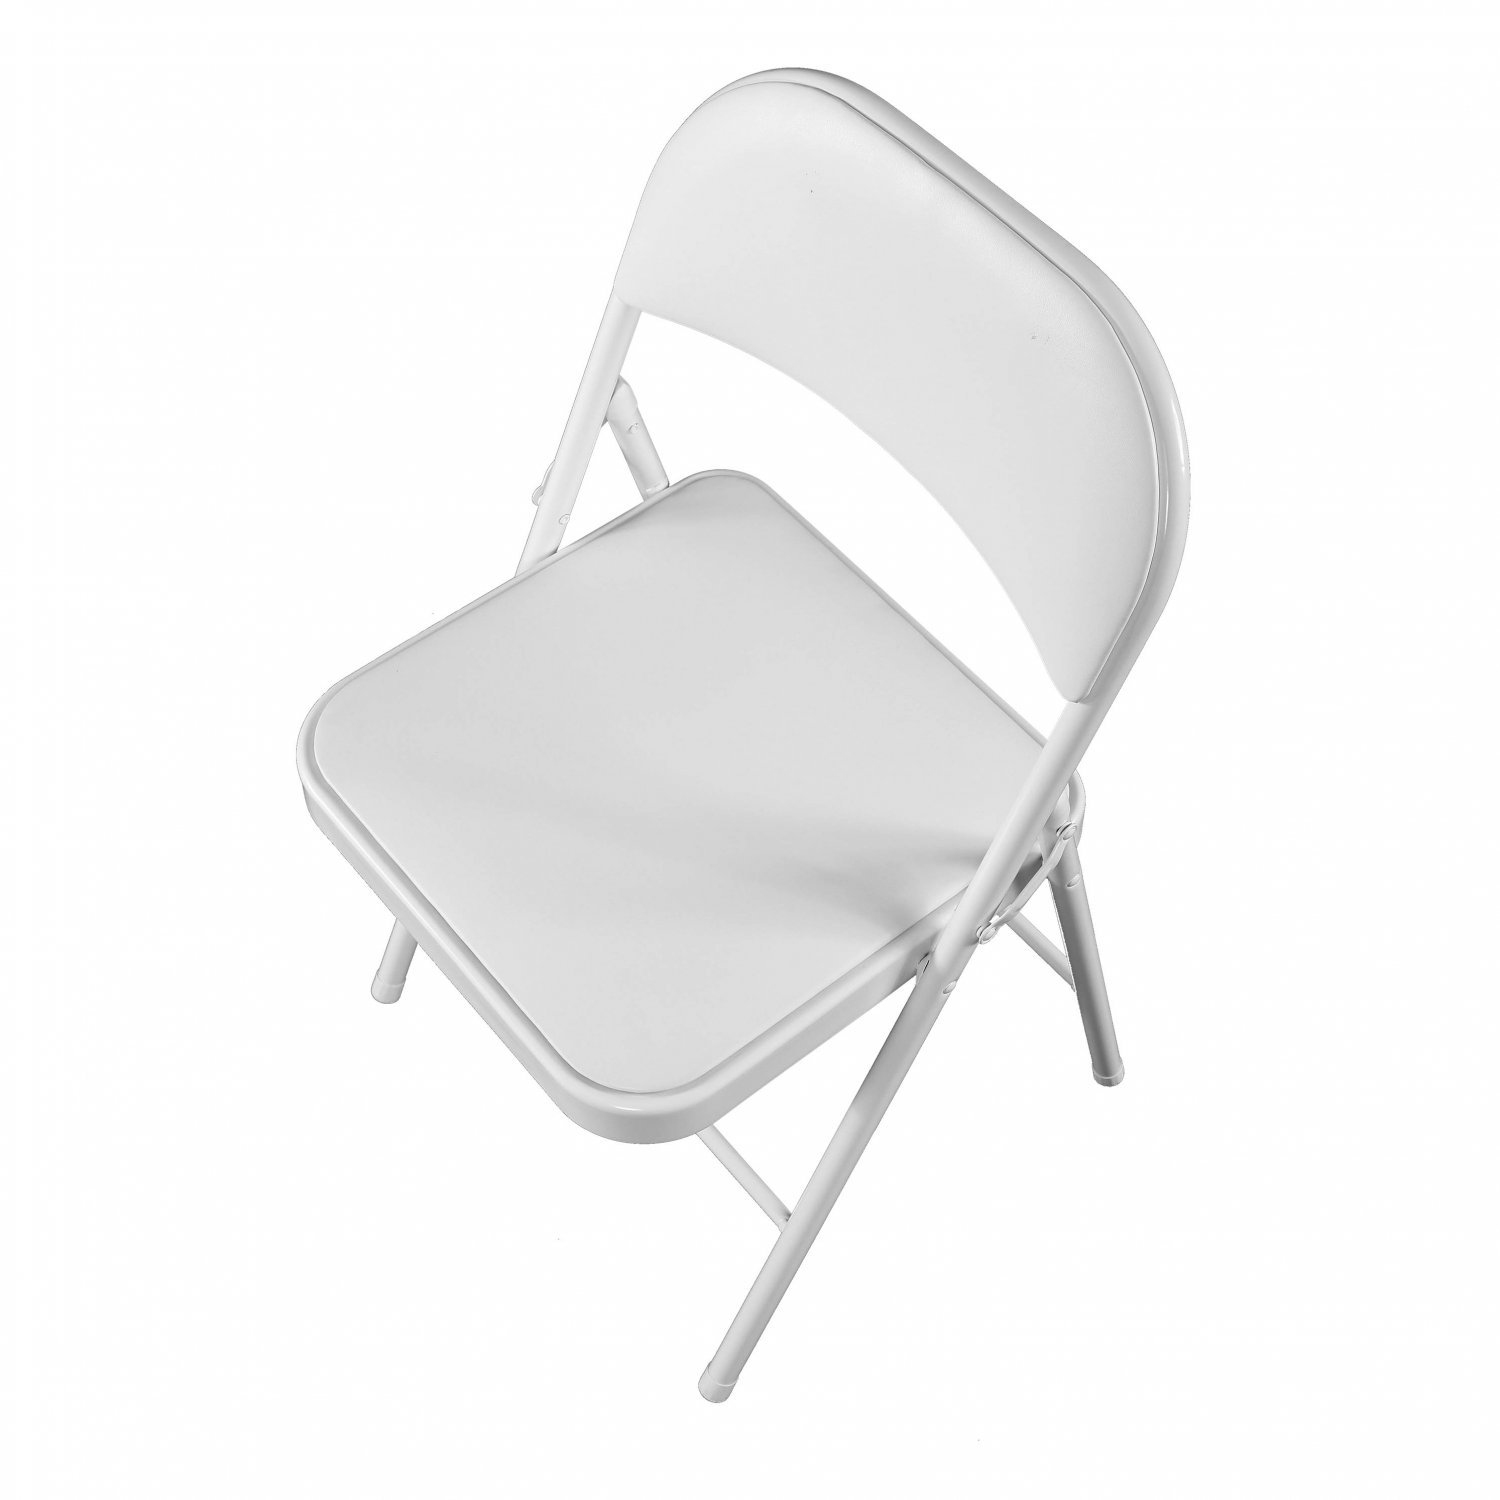 Image of: Heavy Duty White Padded Folding Metal Desk Office Chair Seat 19 99 Oypla Stocking The Very Best In Toys Electrical Furniture Homeware Garden Gifts And Much More